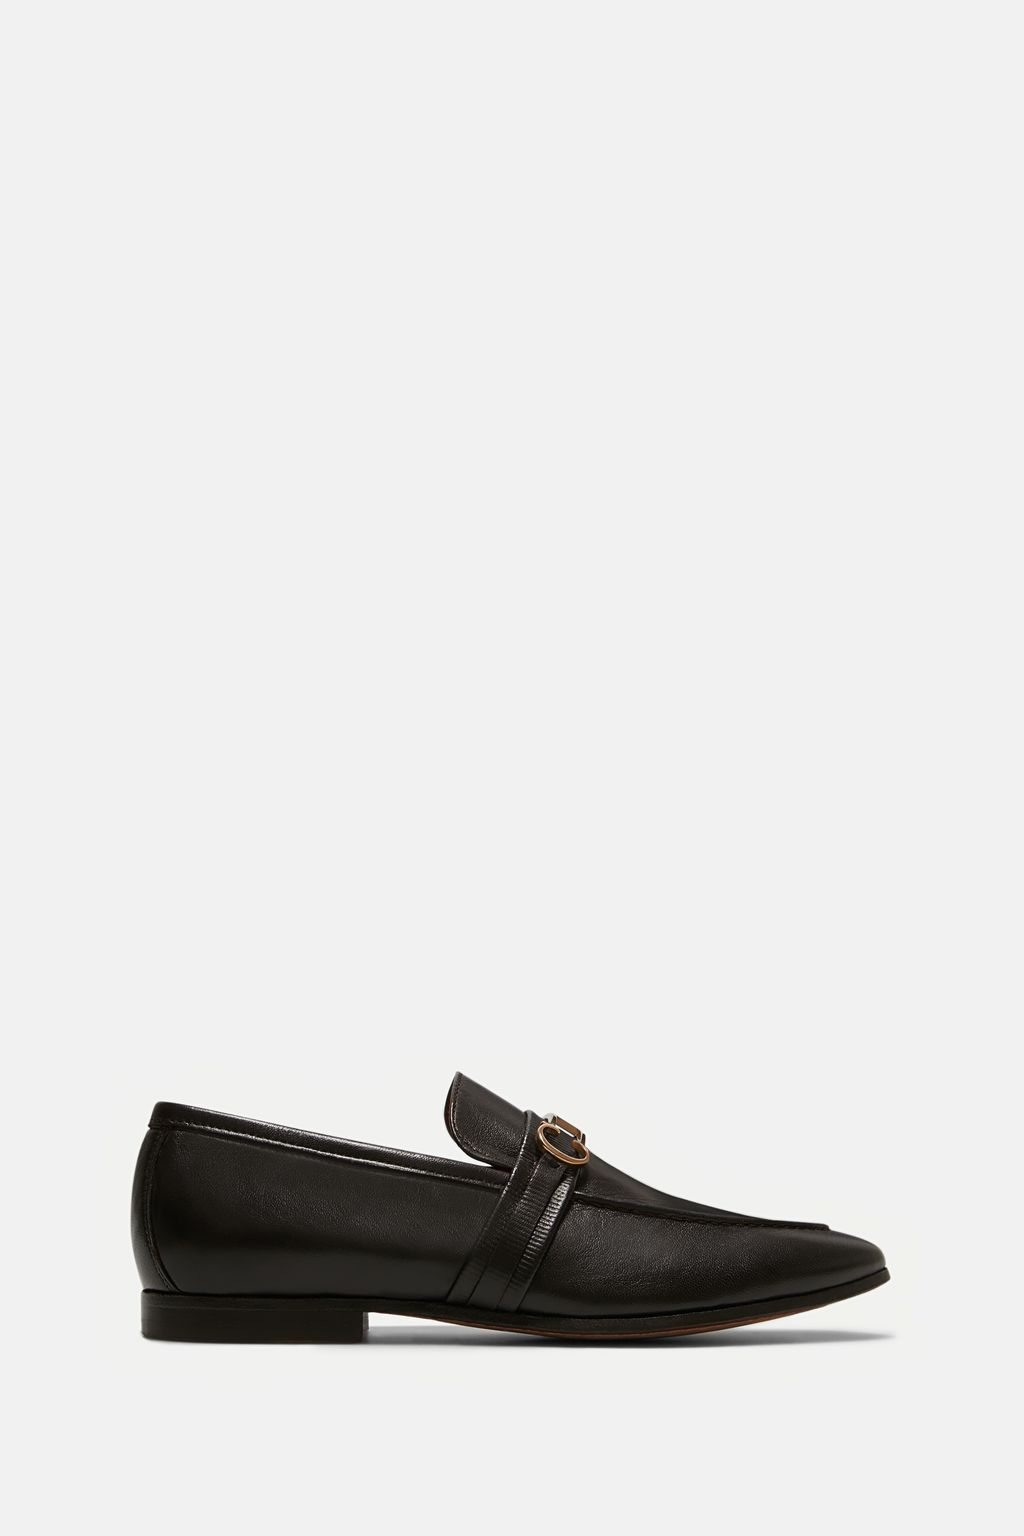 Insignia leather loafers